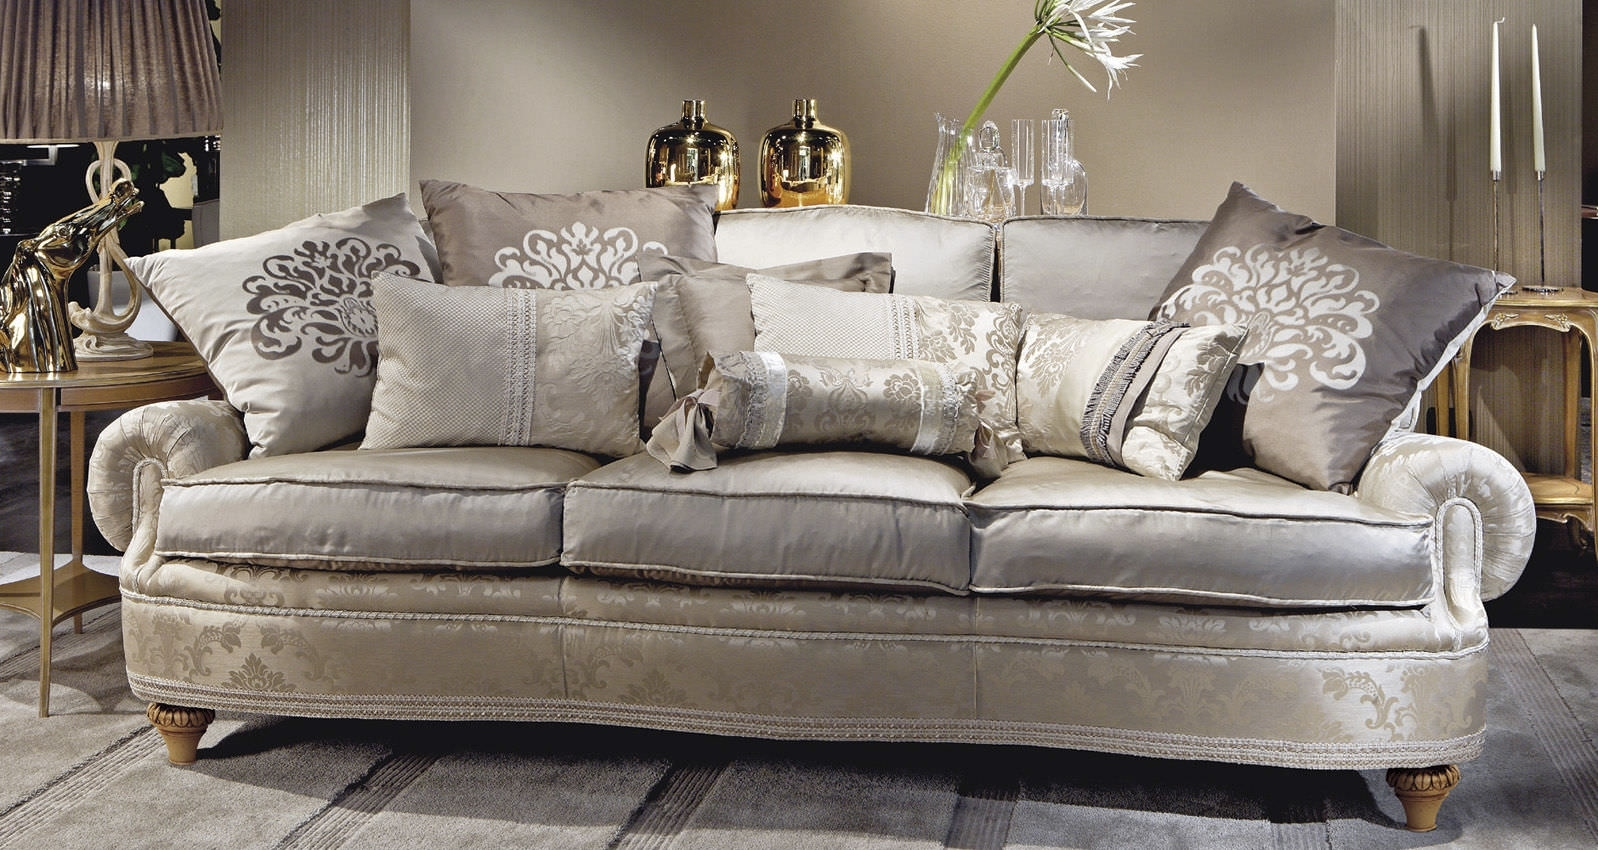 Epic Traditional Sofas 60 For Modern Sofa Inspiration With In Traditional Sofas (Photo 9 of 10)